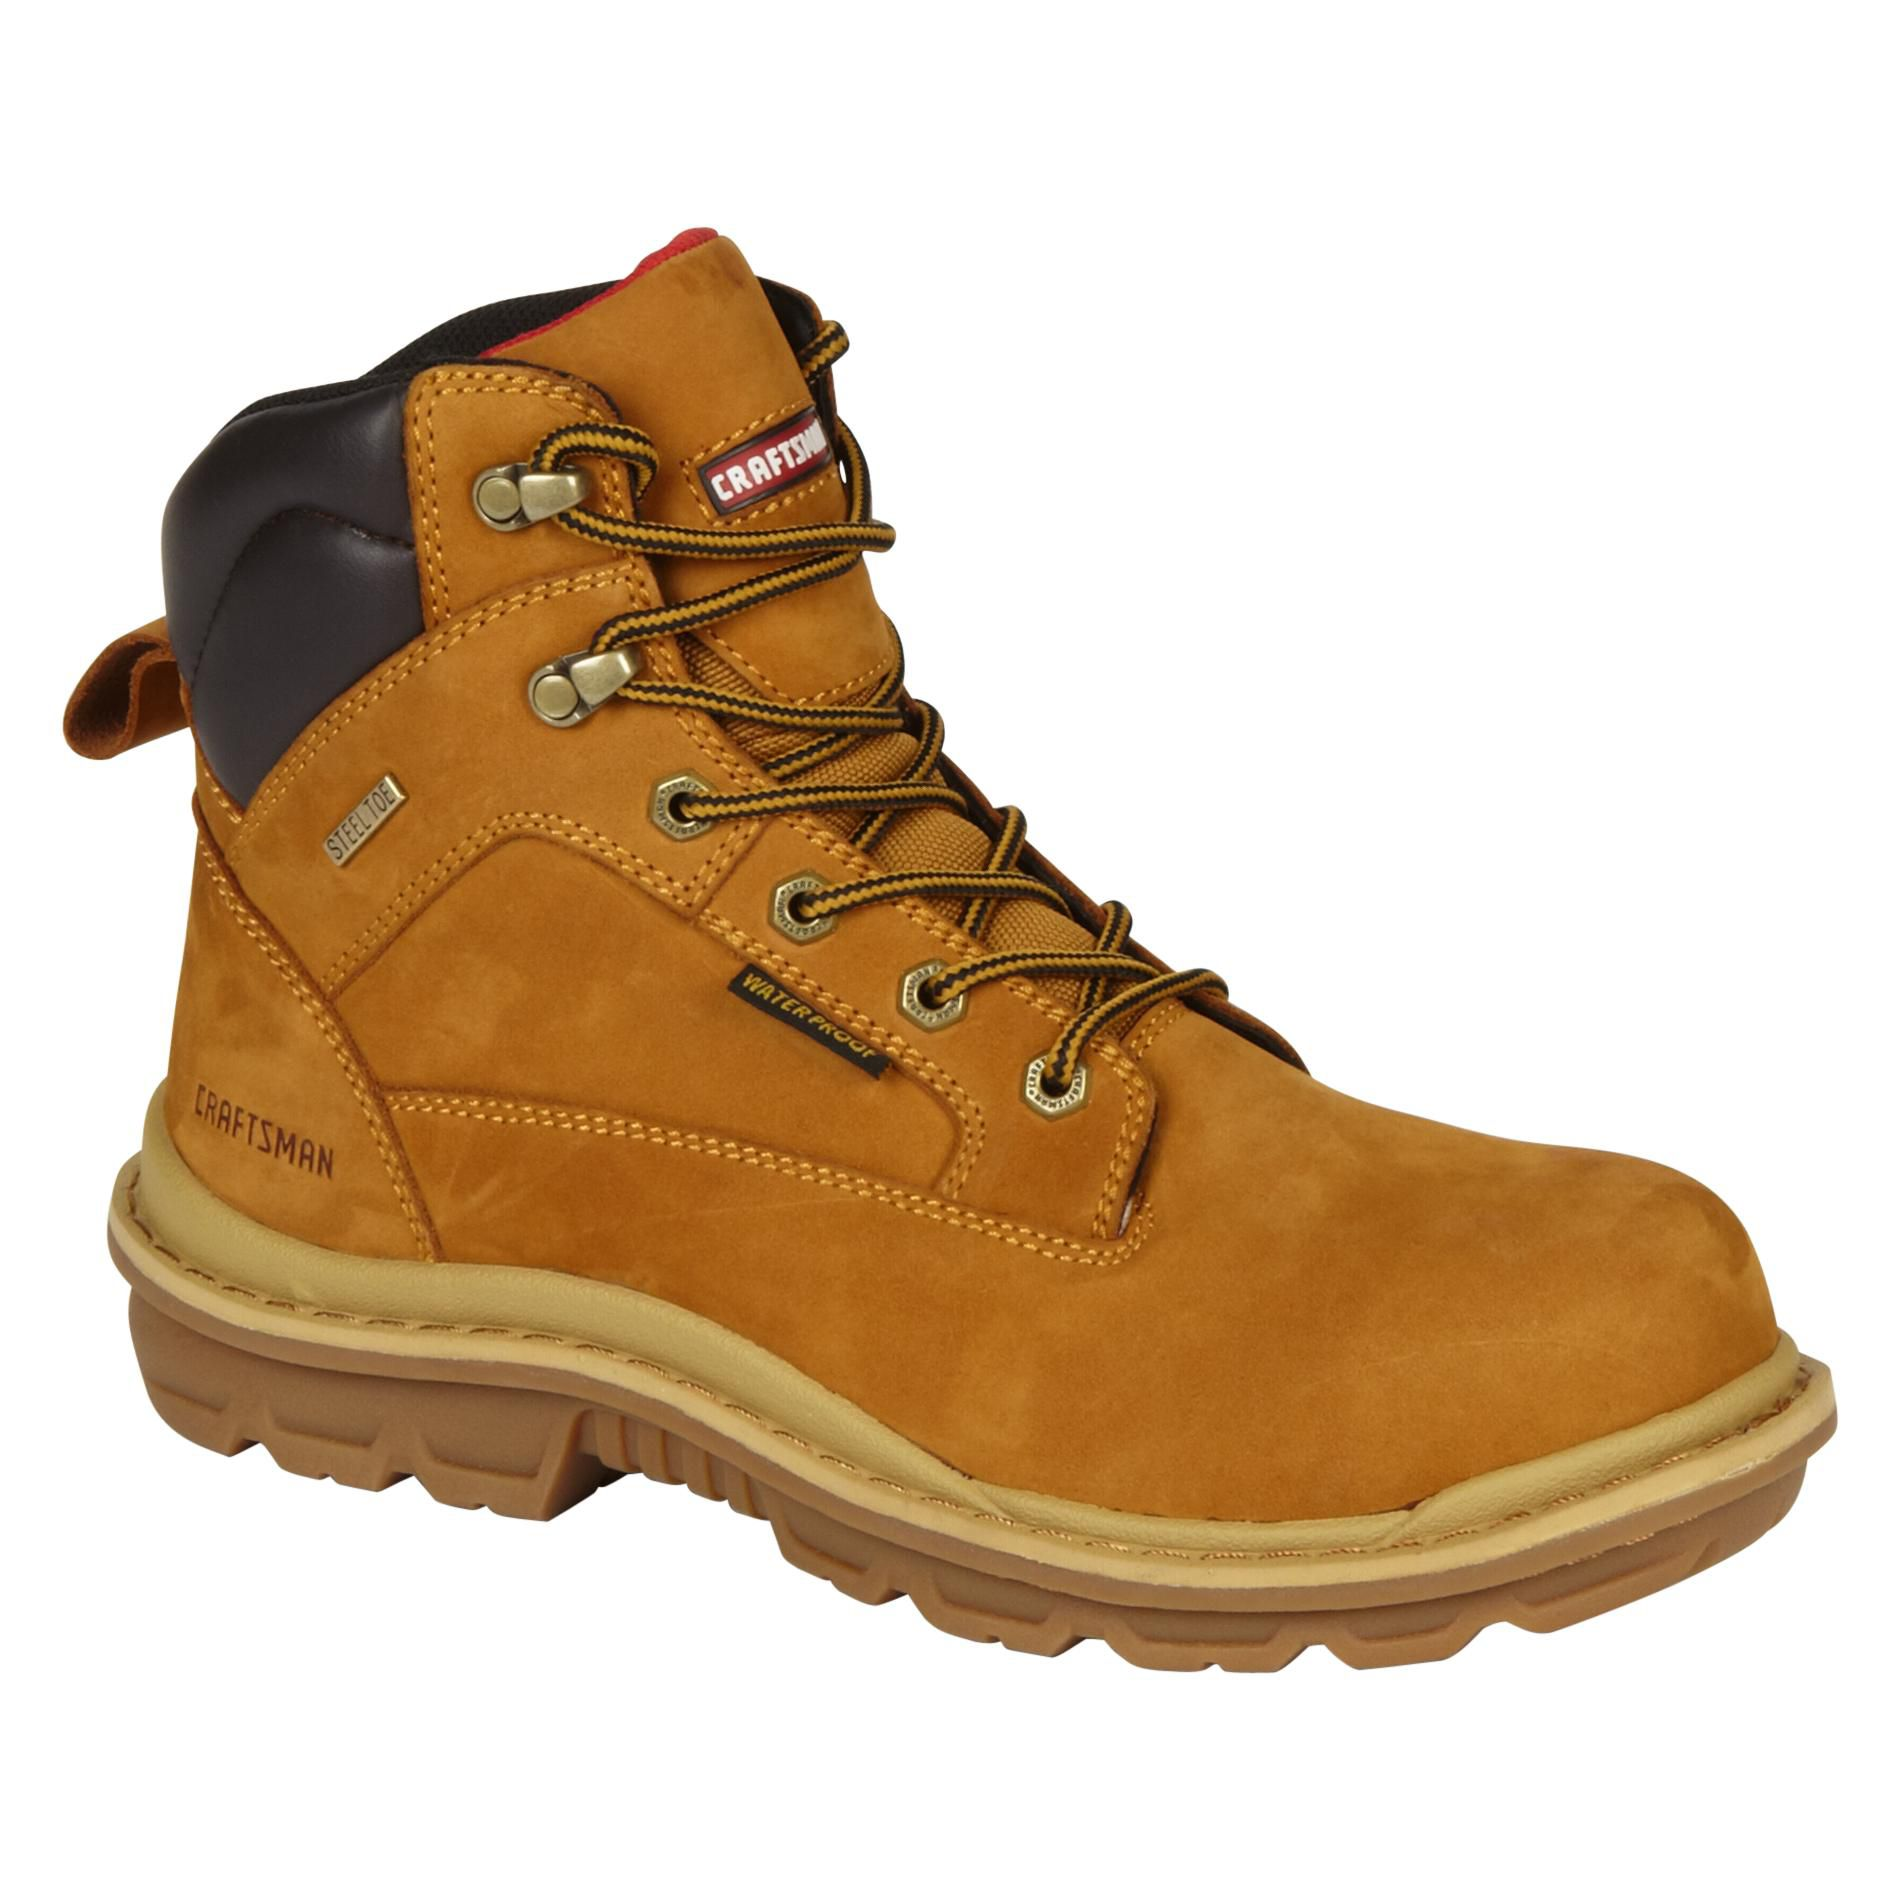 Craftsman  Men's Jagger Steel Toe Work